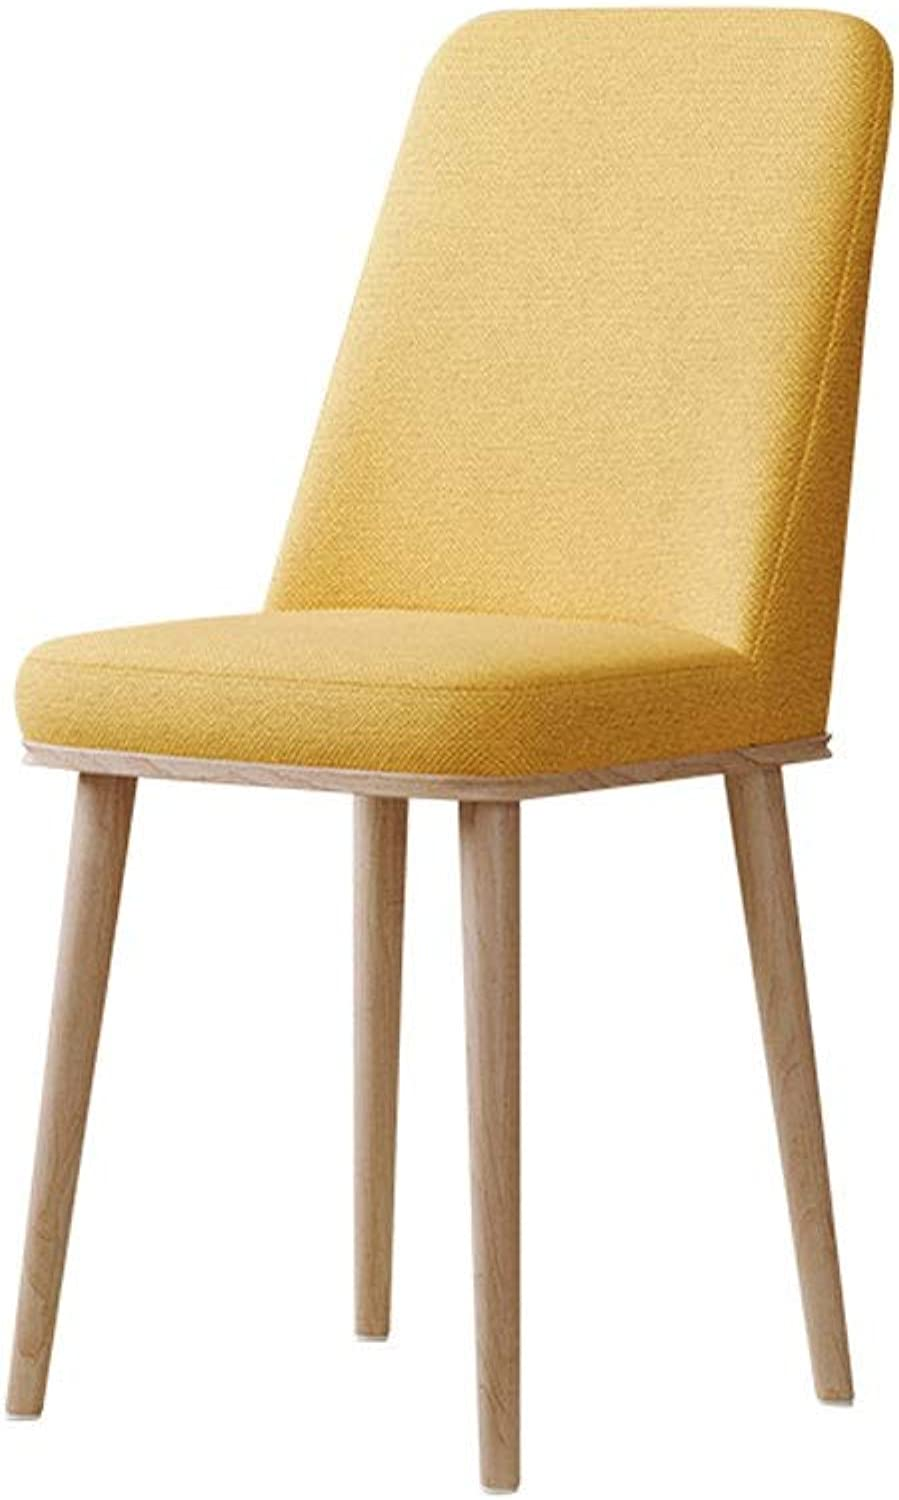 A+ Stylish and Simple Dining Table and Chairs, Casual Armrestless Backrest, Nordic Home PU Leather Soft Cushion Cushion Bar Chair - 45cmX45cmX93cm (color   Yellow)